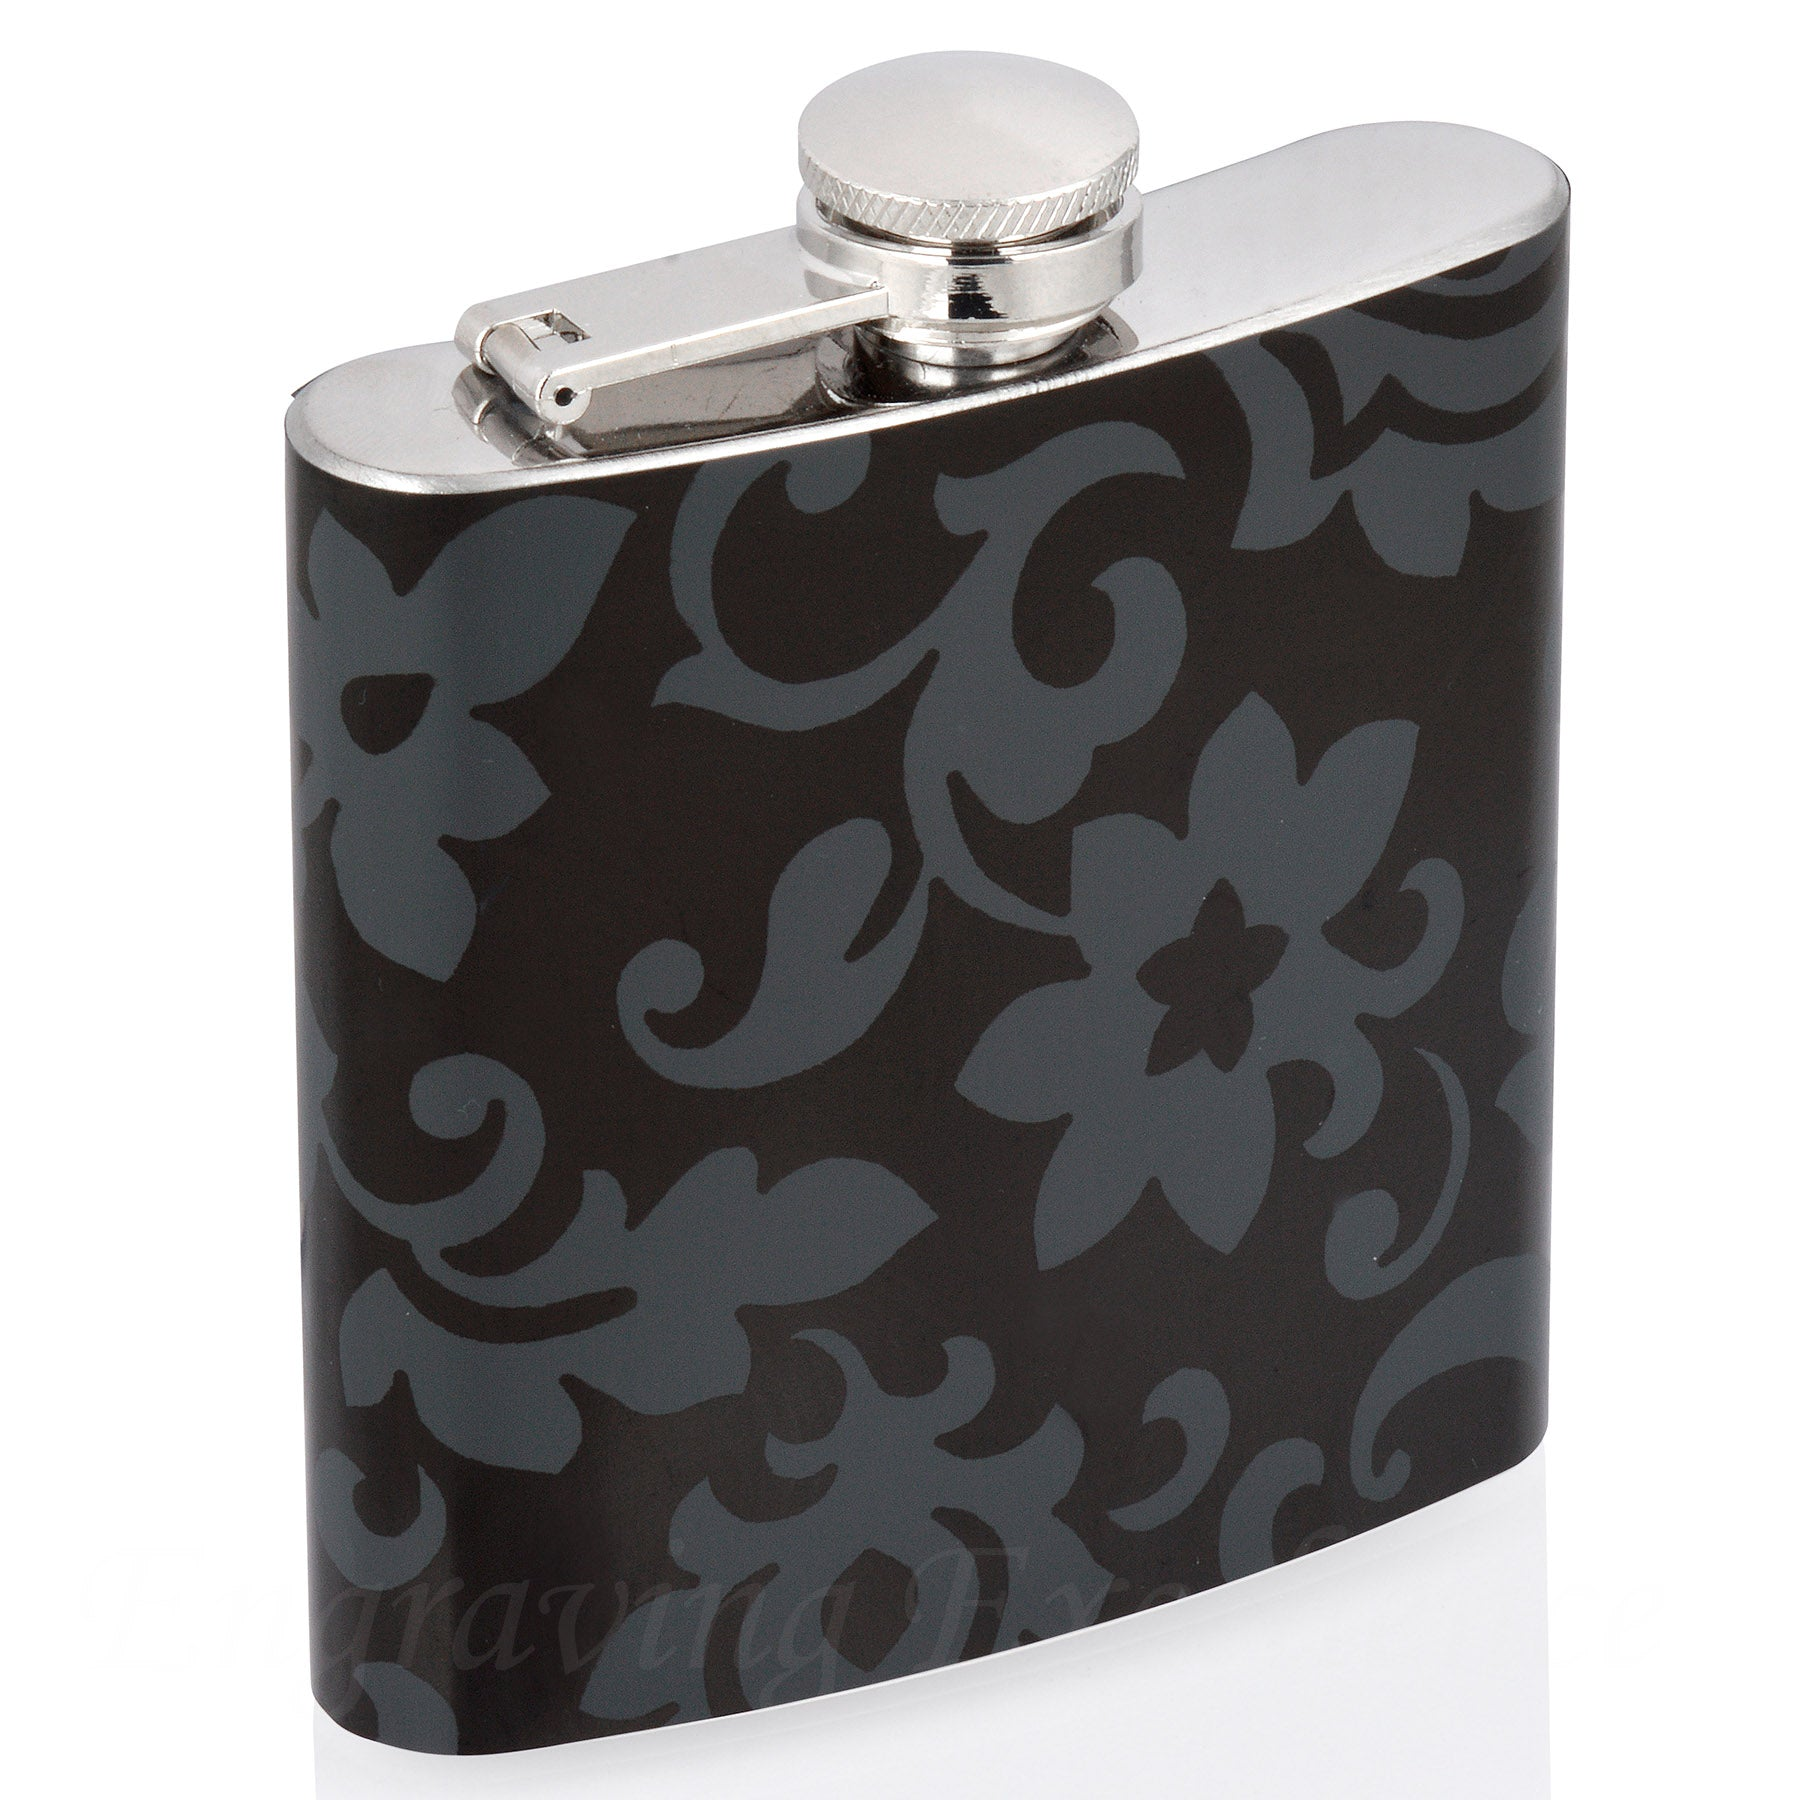 6oz Vinyl Covered Flask with Black Floral Pattern